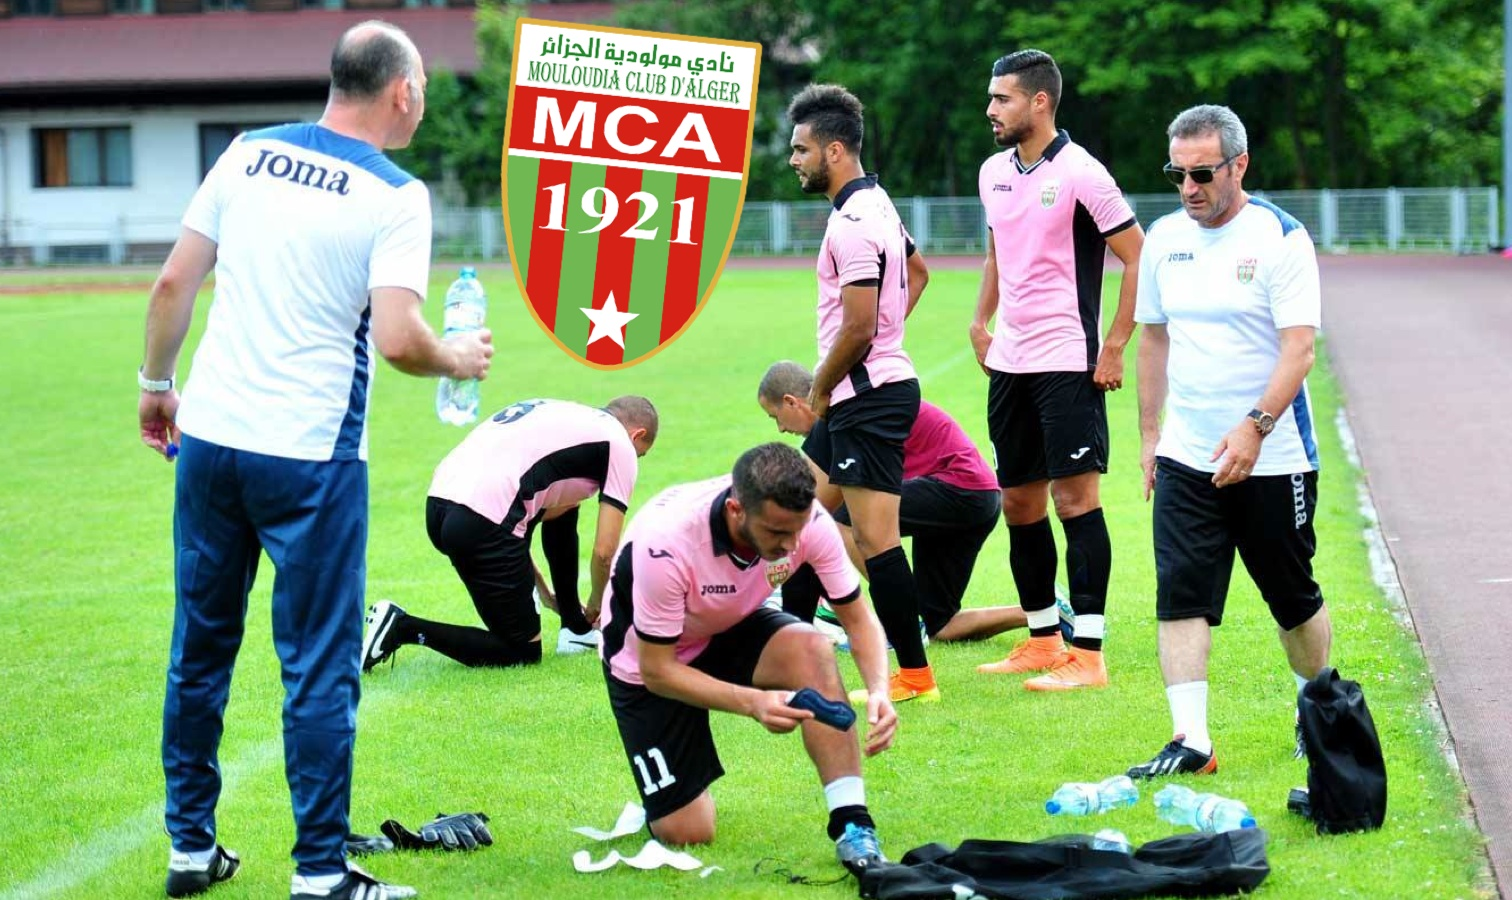 mca stage pologne scandale